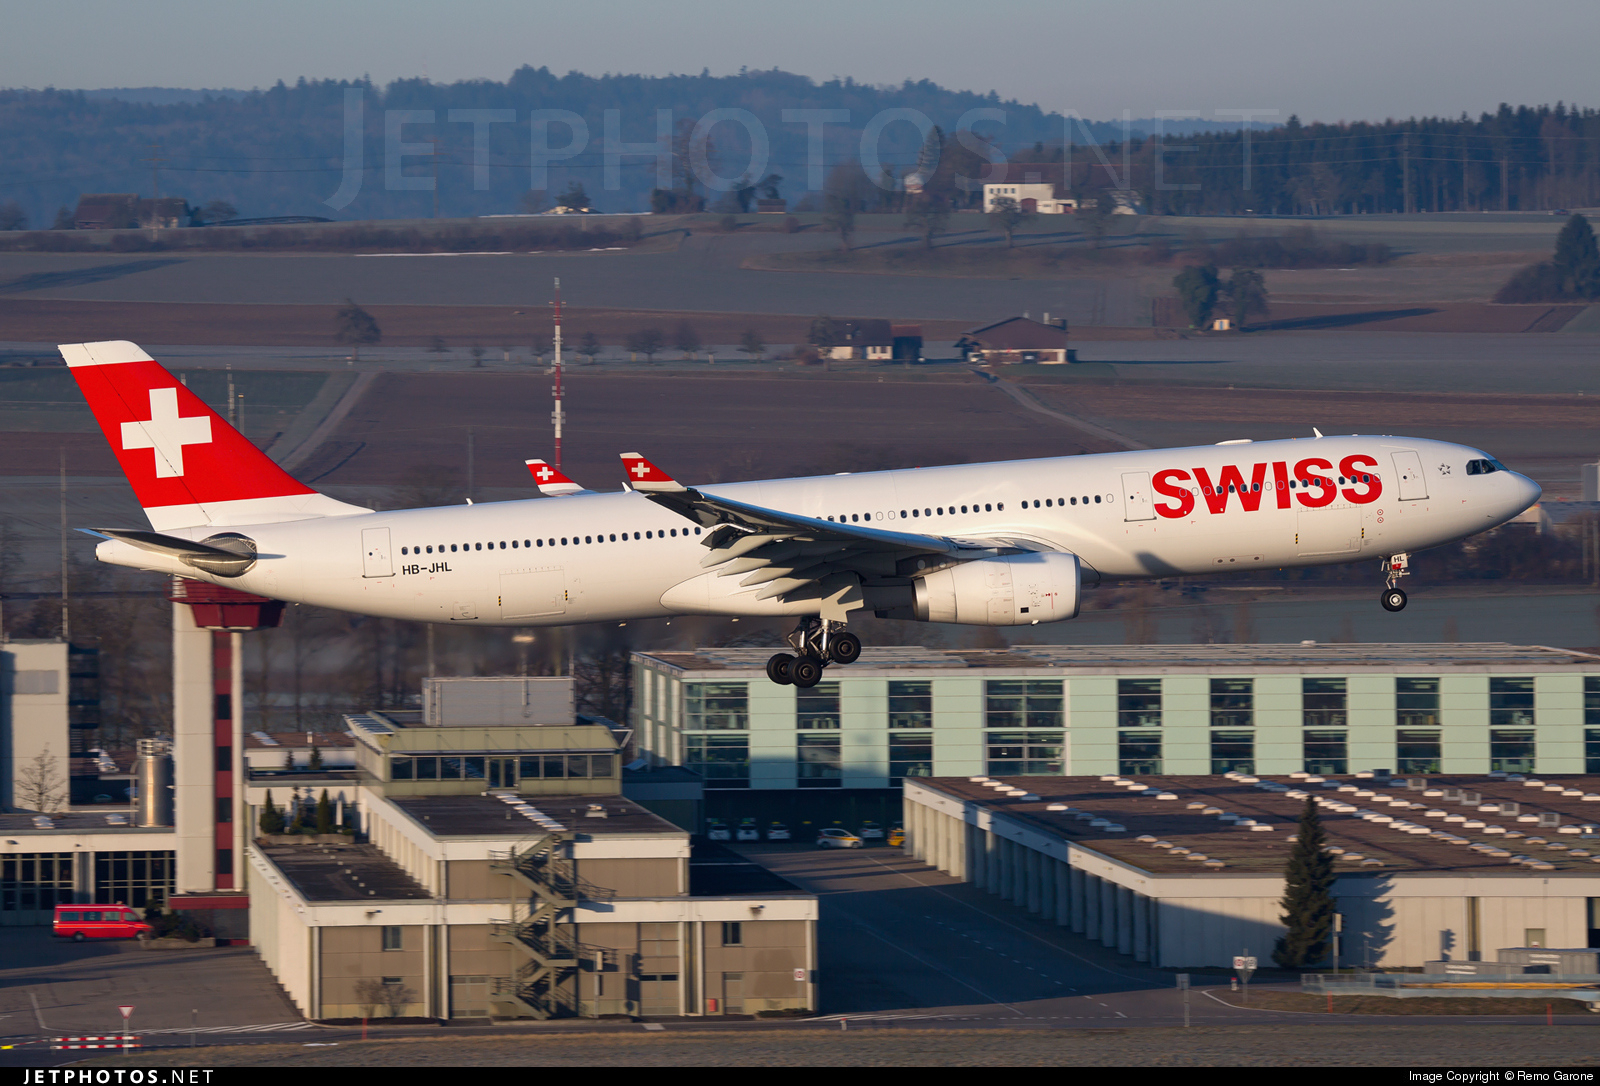 HB-JHL caught at ZRH/LSZH on March 7th 2015